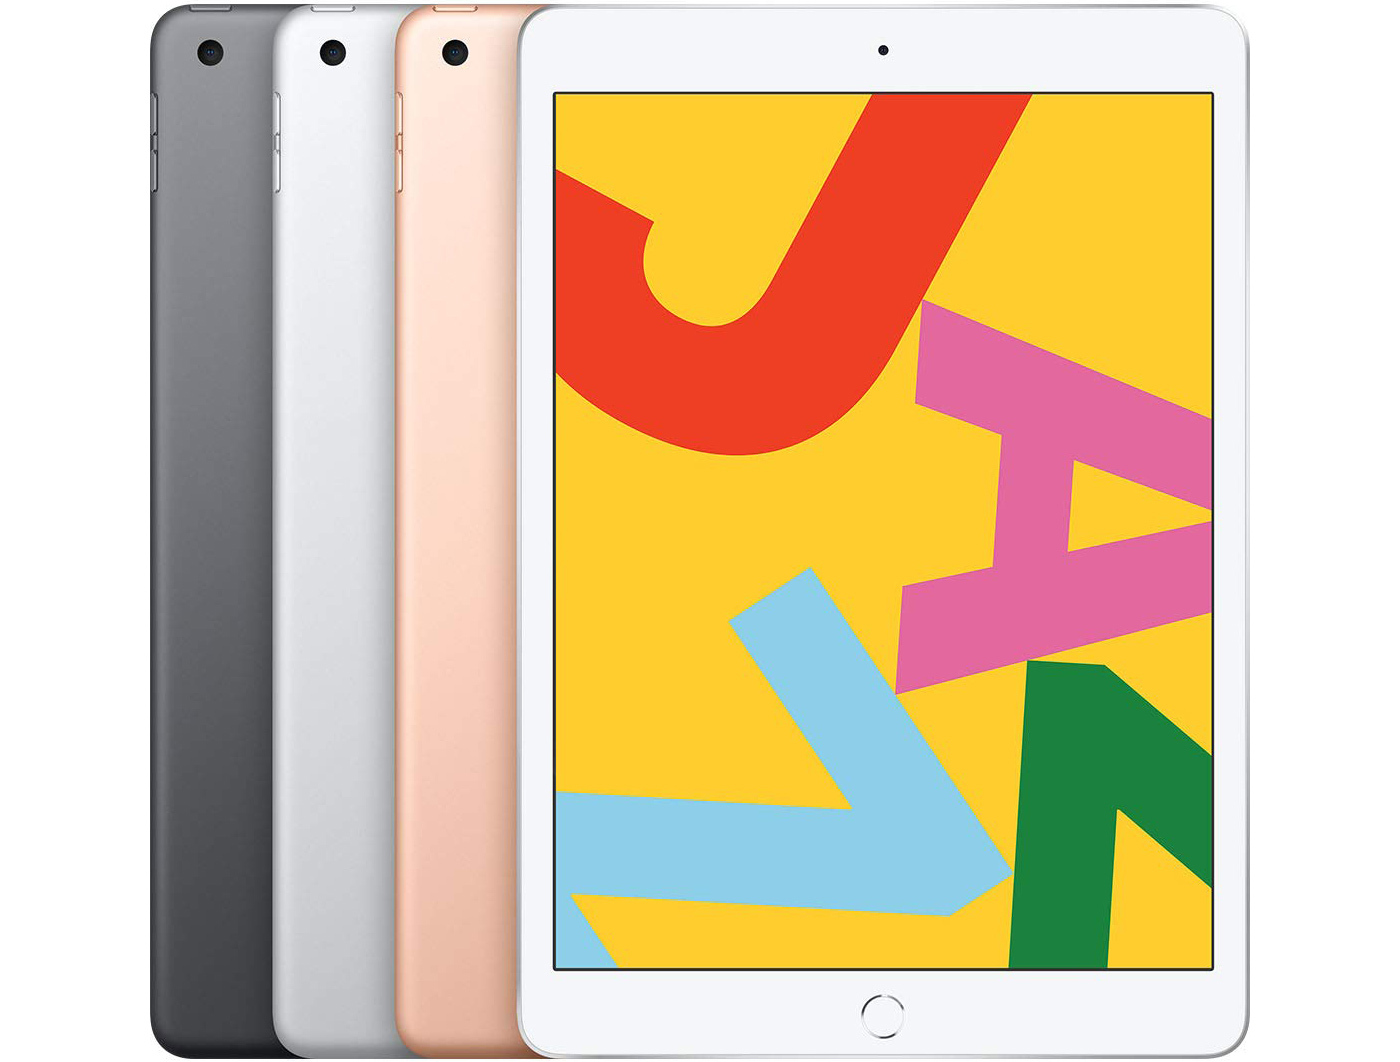 Apple's 10.2-inch iPad hasn't even been released yet, but you can already save $30